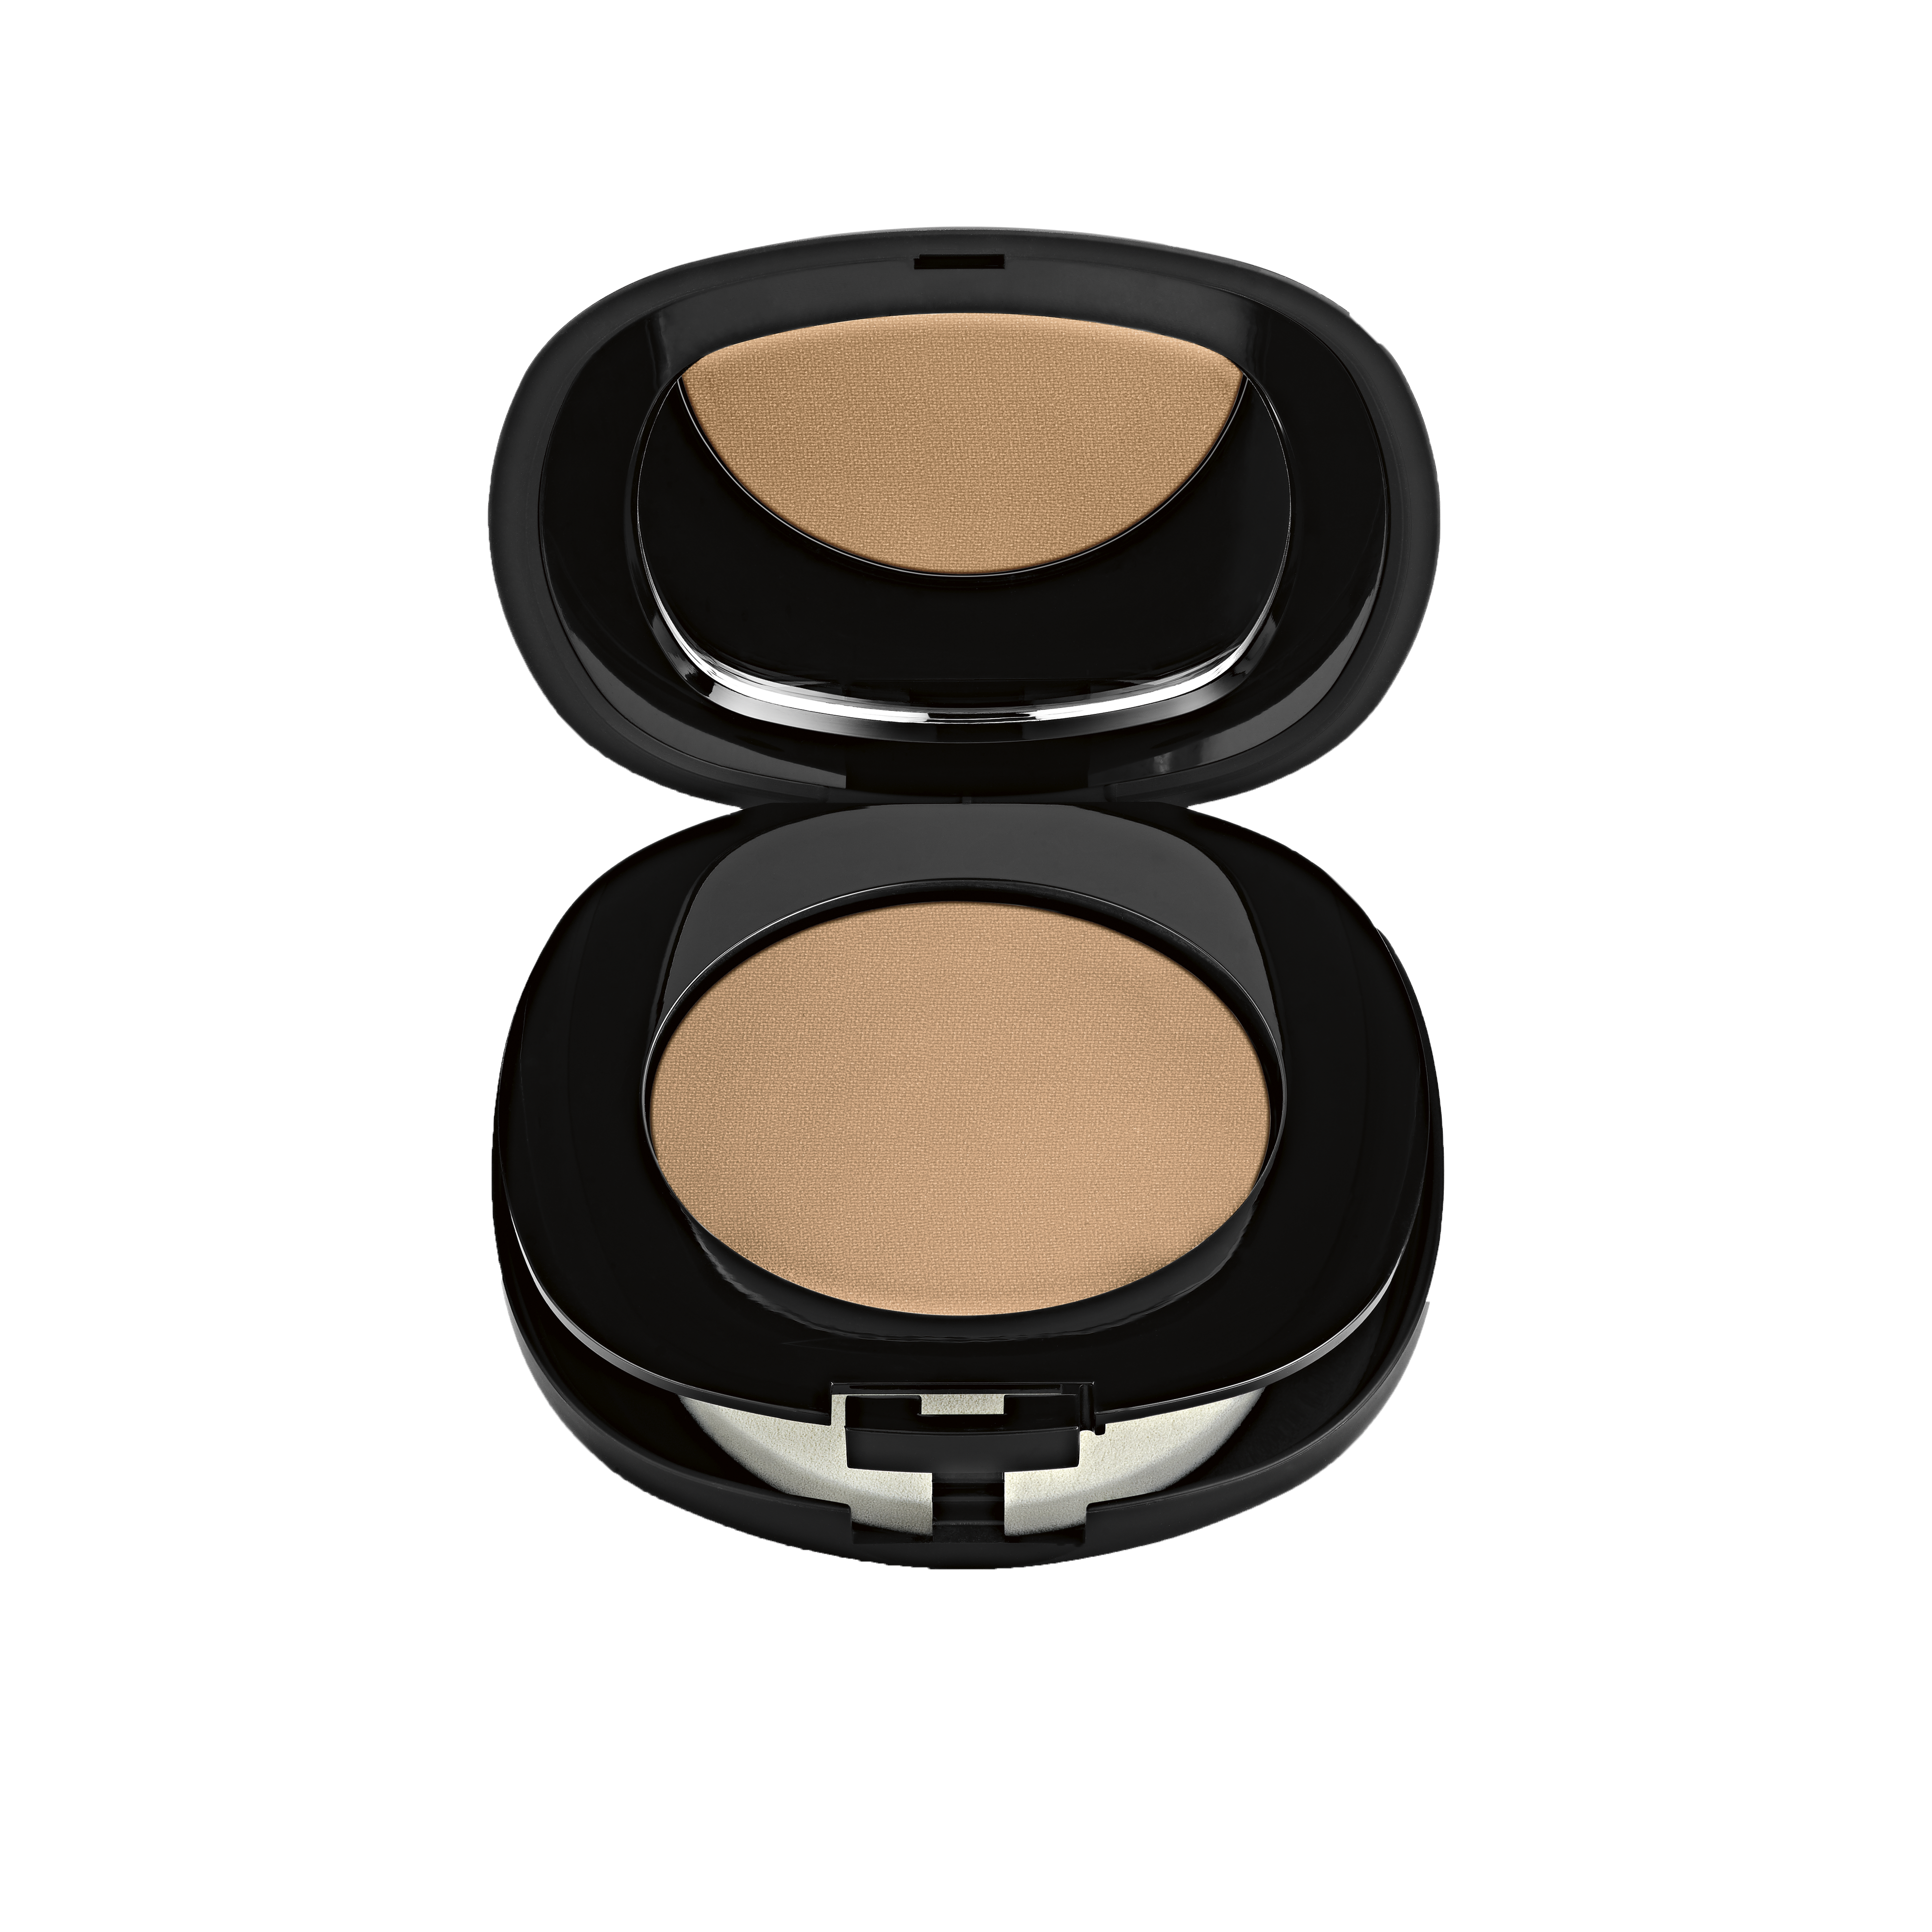 Flawless Finish Everyday Perfection Bouncy Foundation Neutral Beige 06